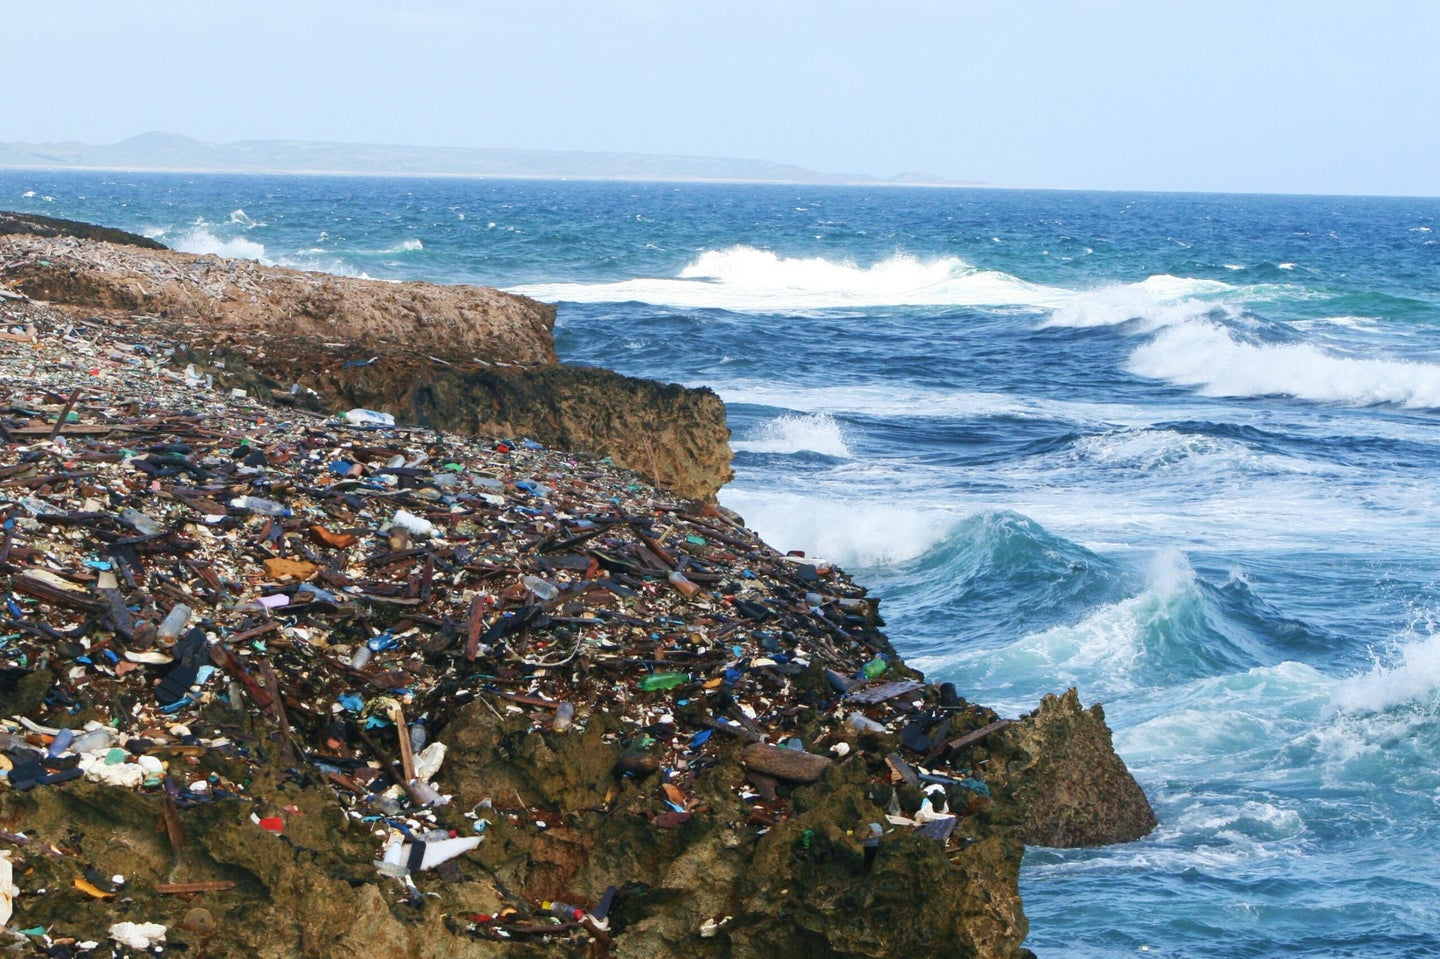 Plastic chemicals could harm the ocean bacteria that produce 10 percent of our oxygen